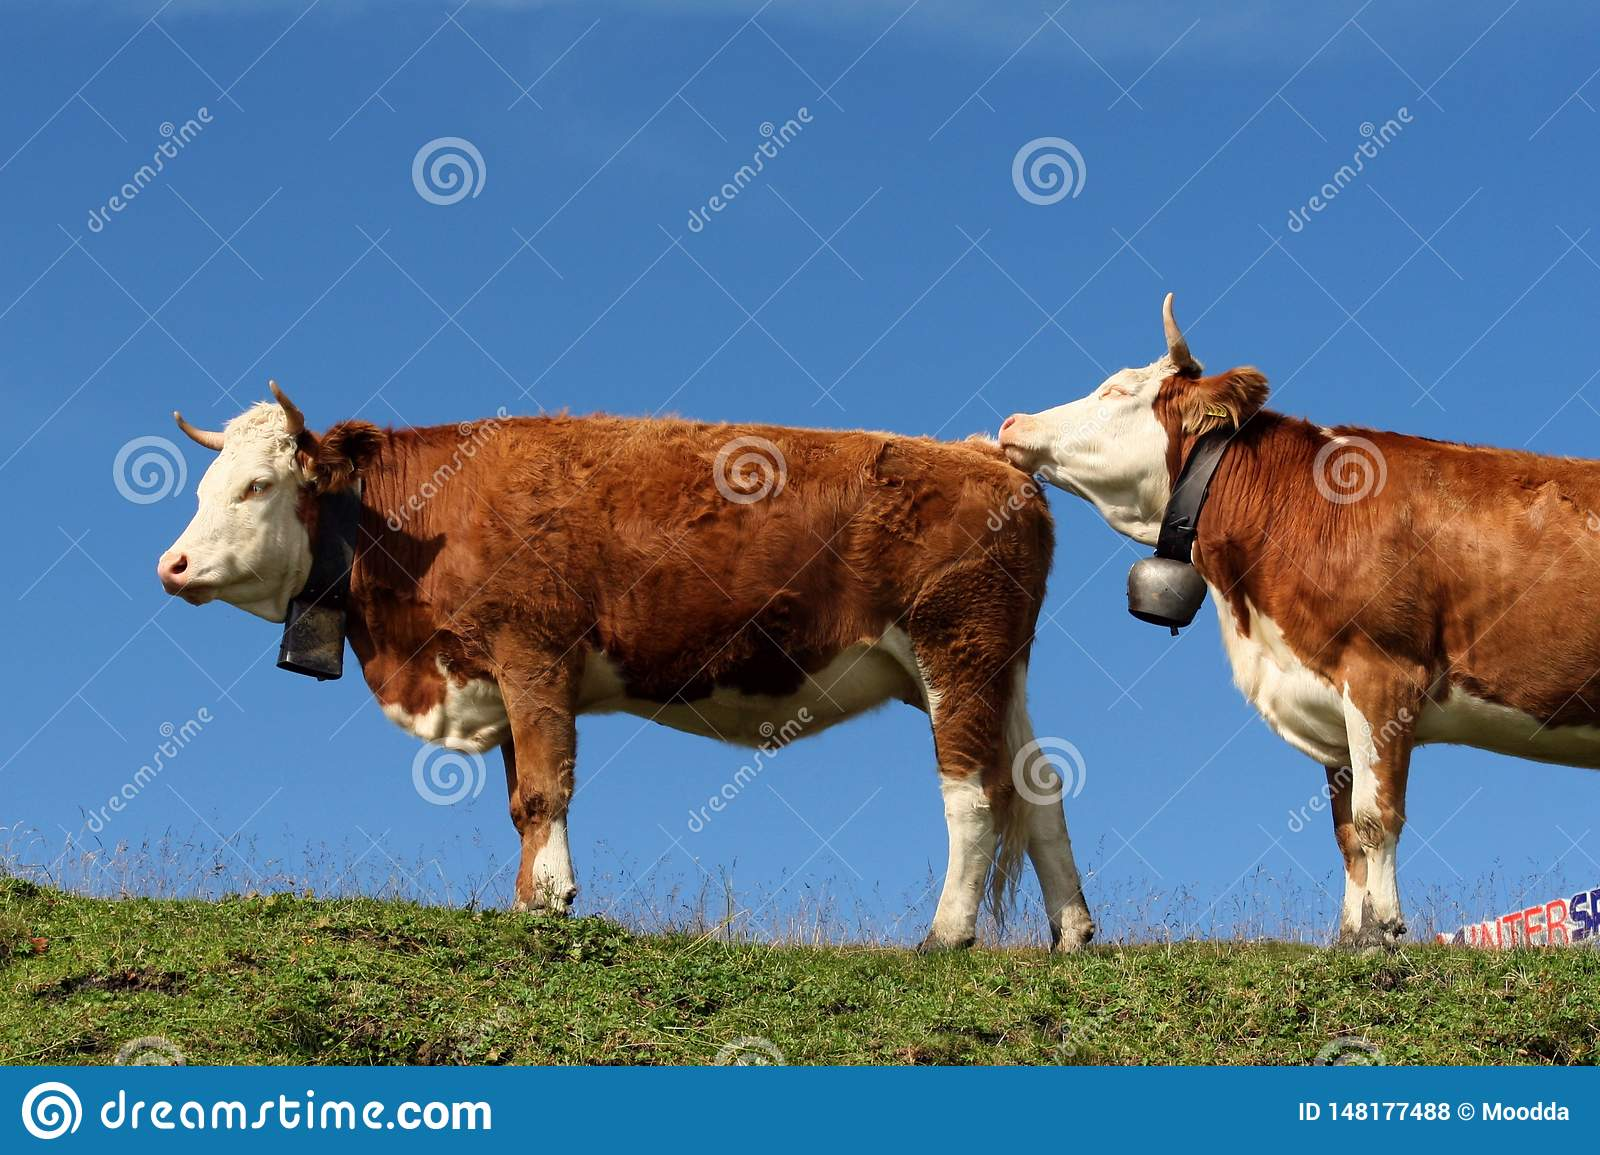 Cows in the Swiss Alps. The Swiss countryside